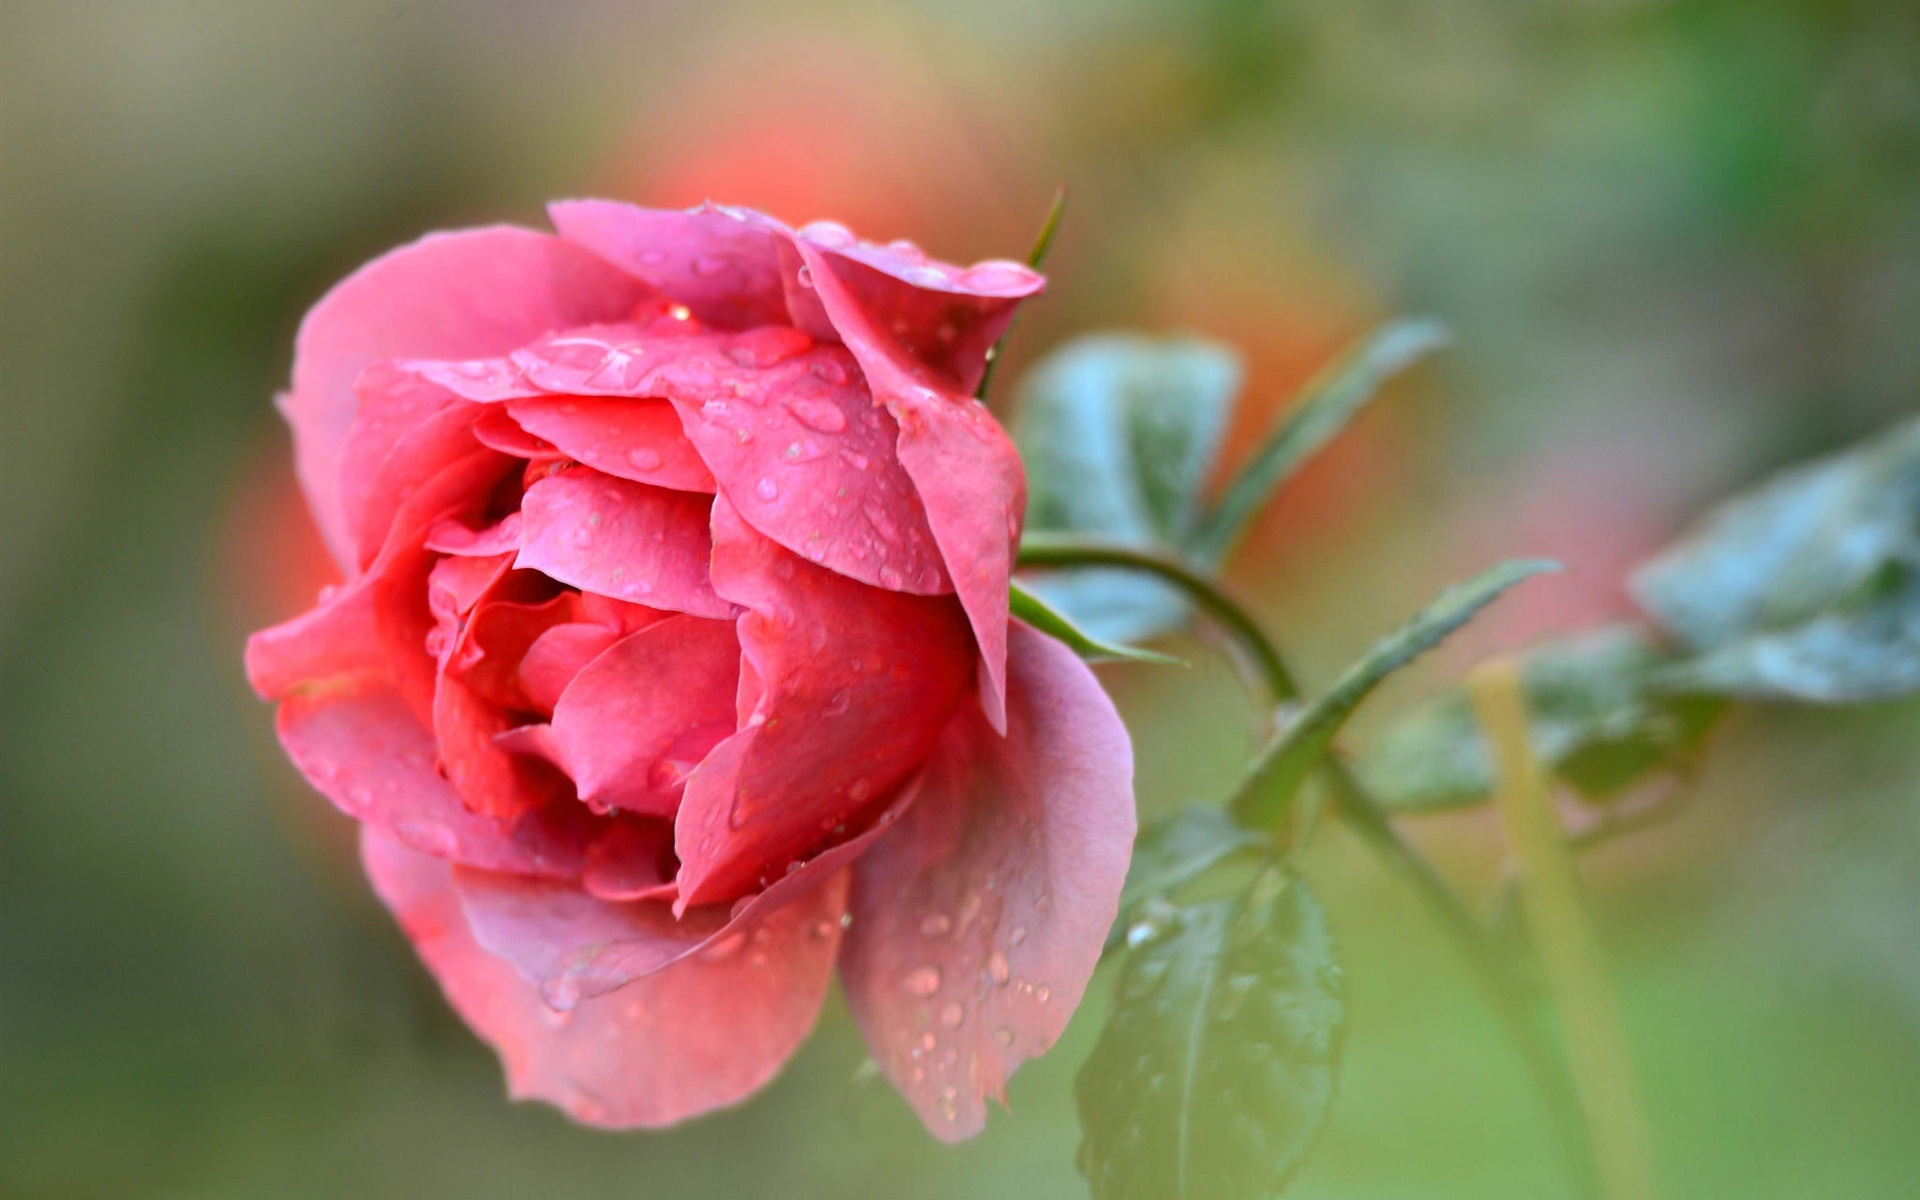 Wallpaper single red rose flower water drops 1920x1200 hd - Rose with water drops wallpaper ...